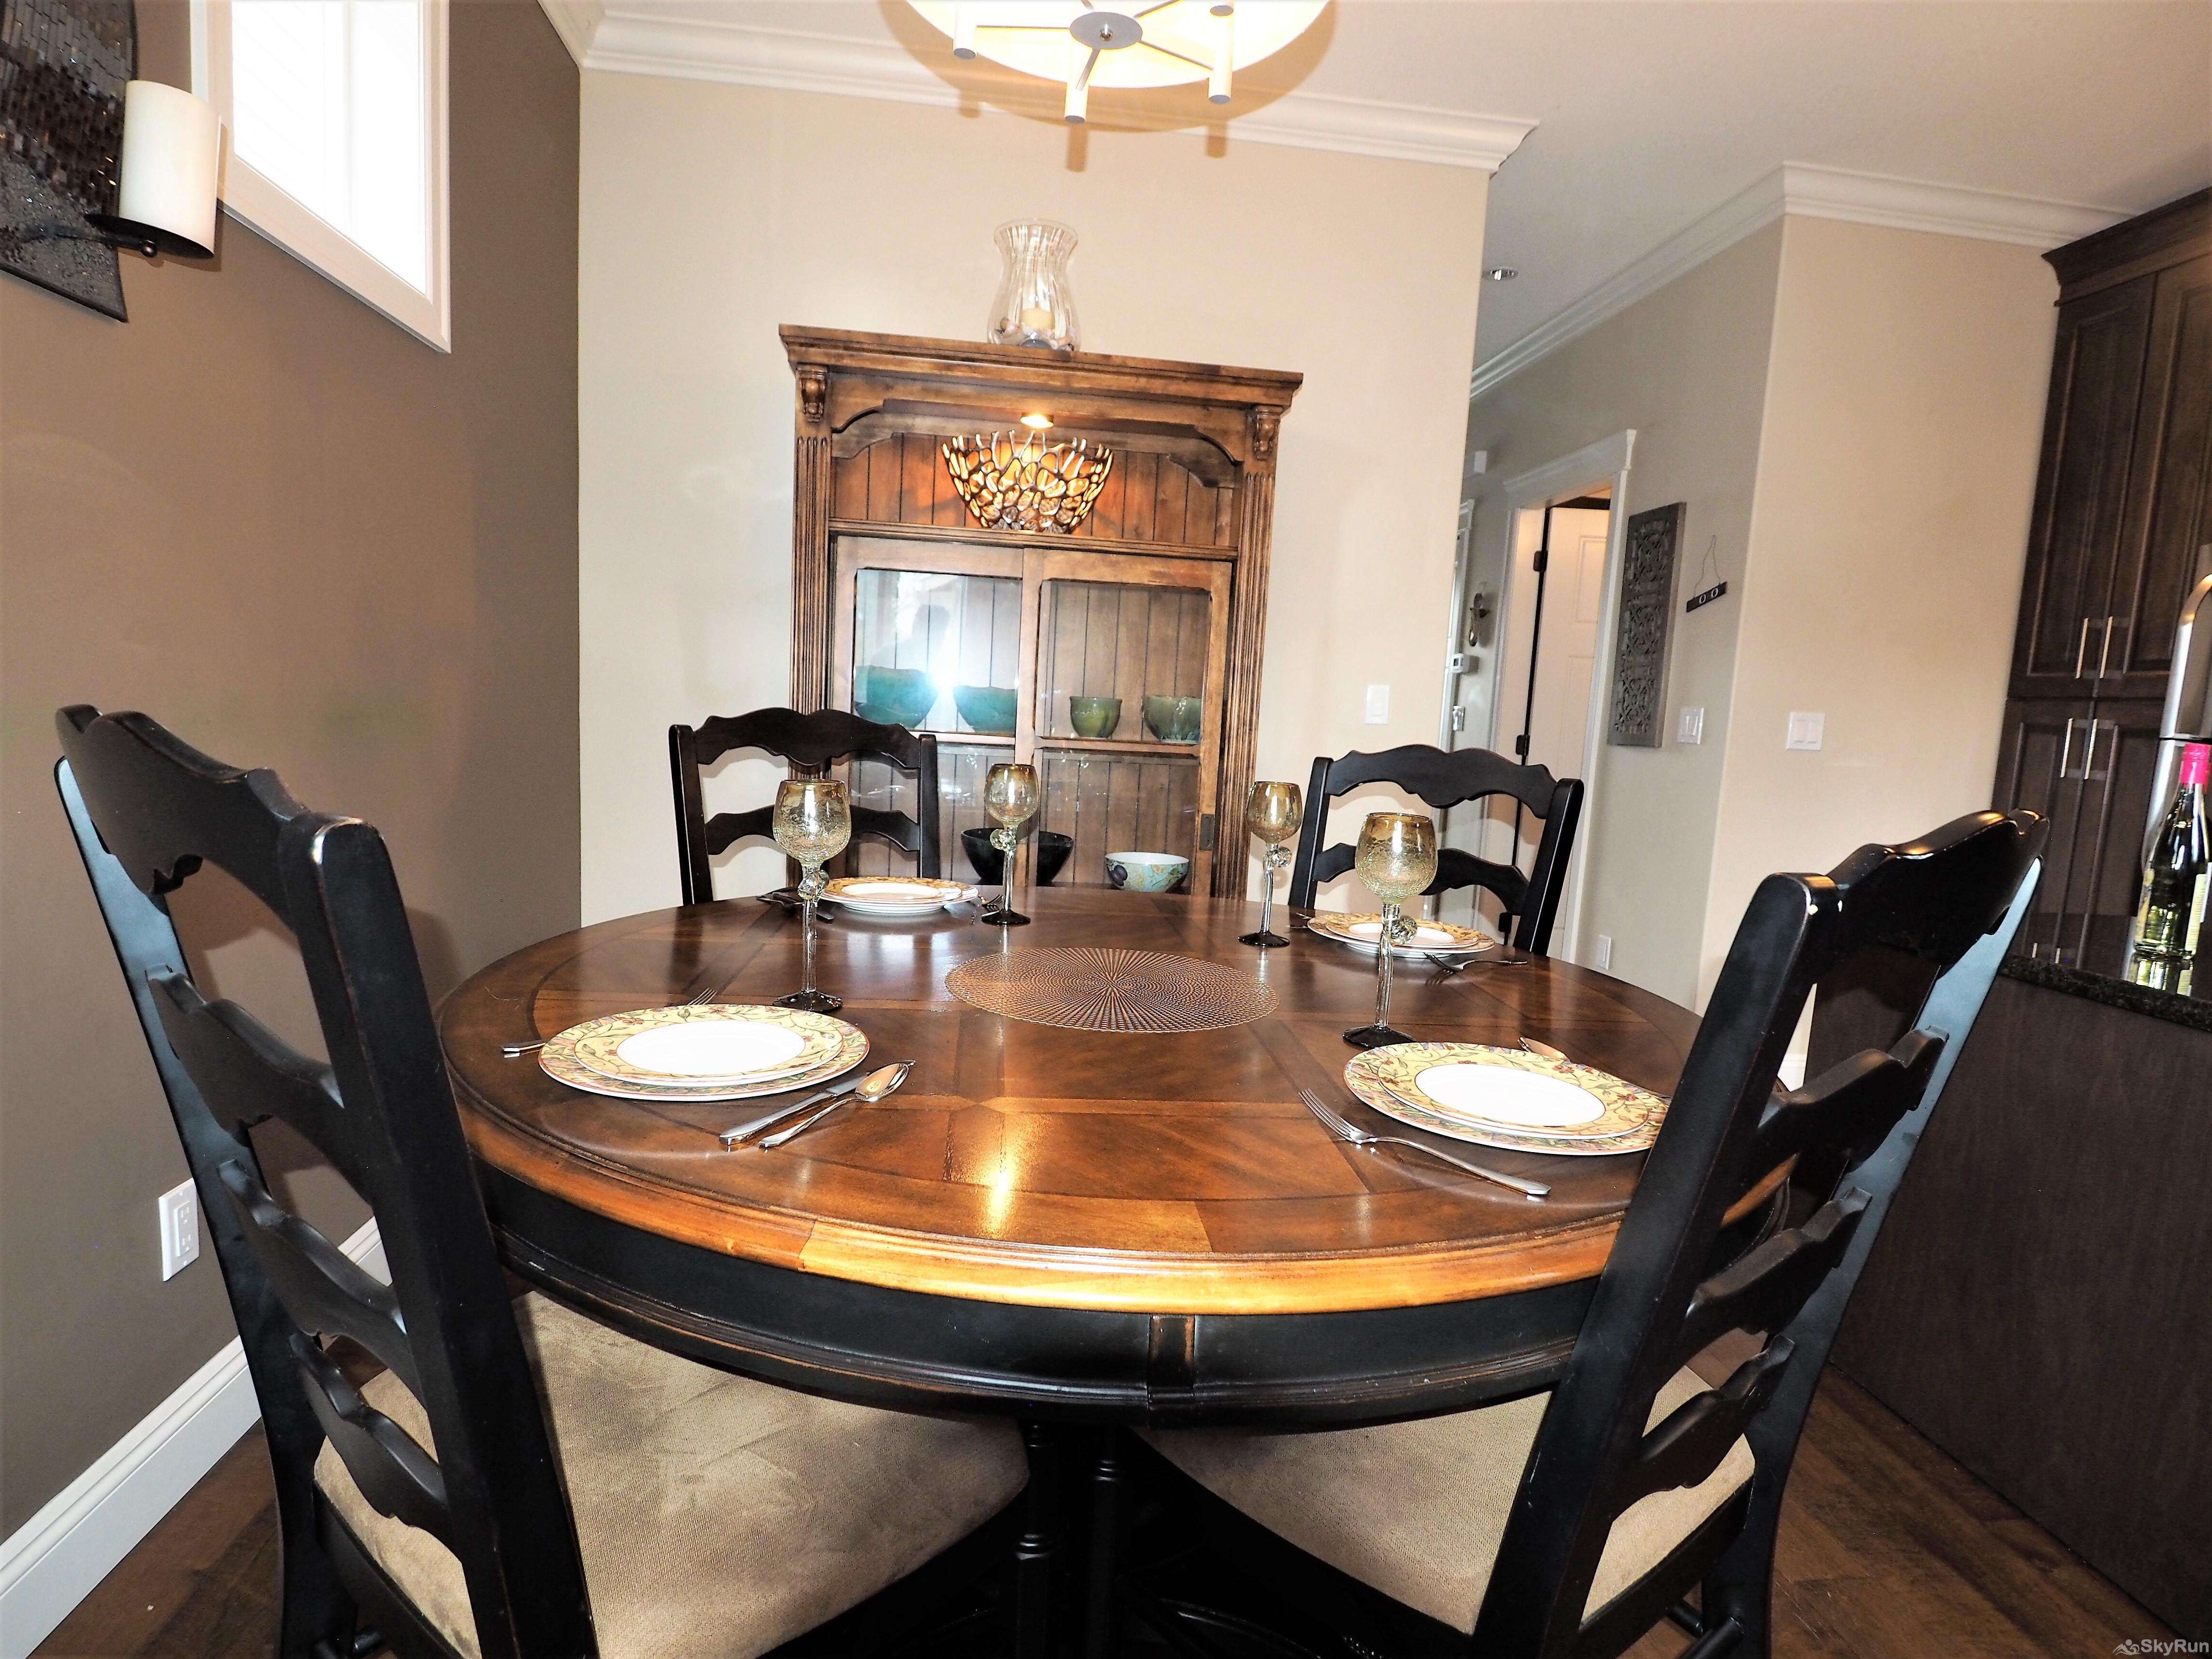 Old Summerland 3 bedroom home Dining table easily seats 6